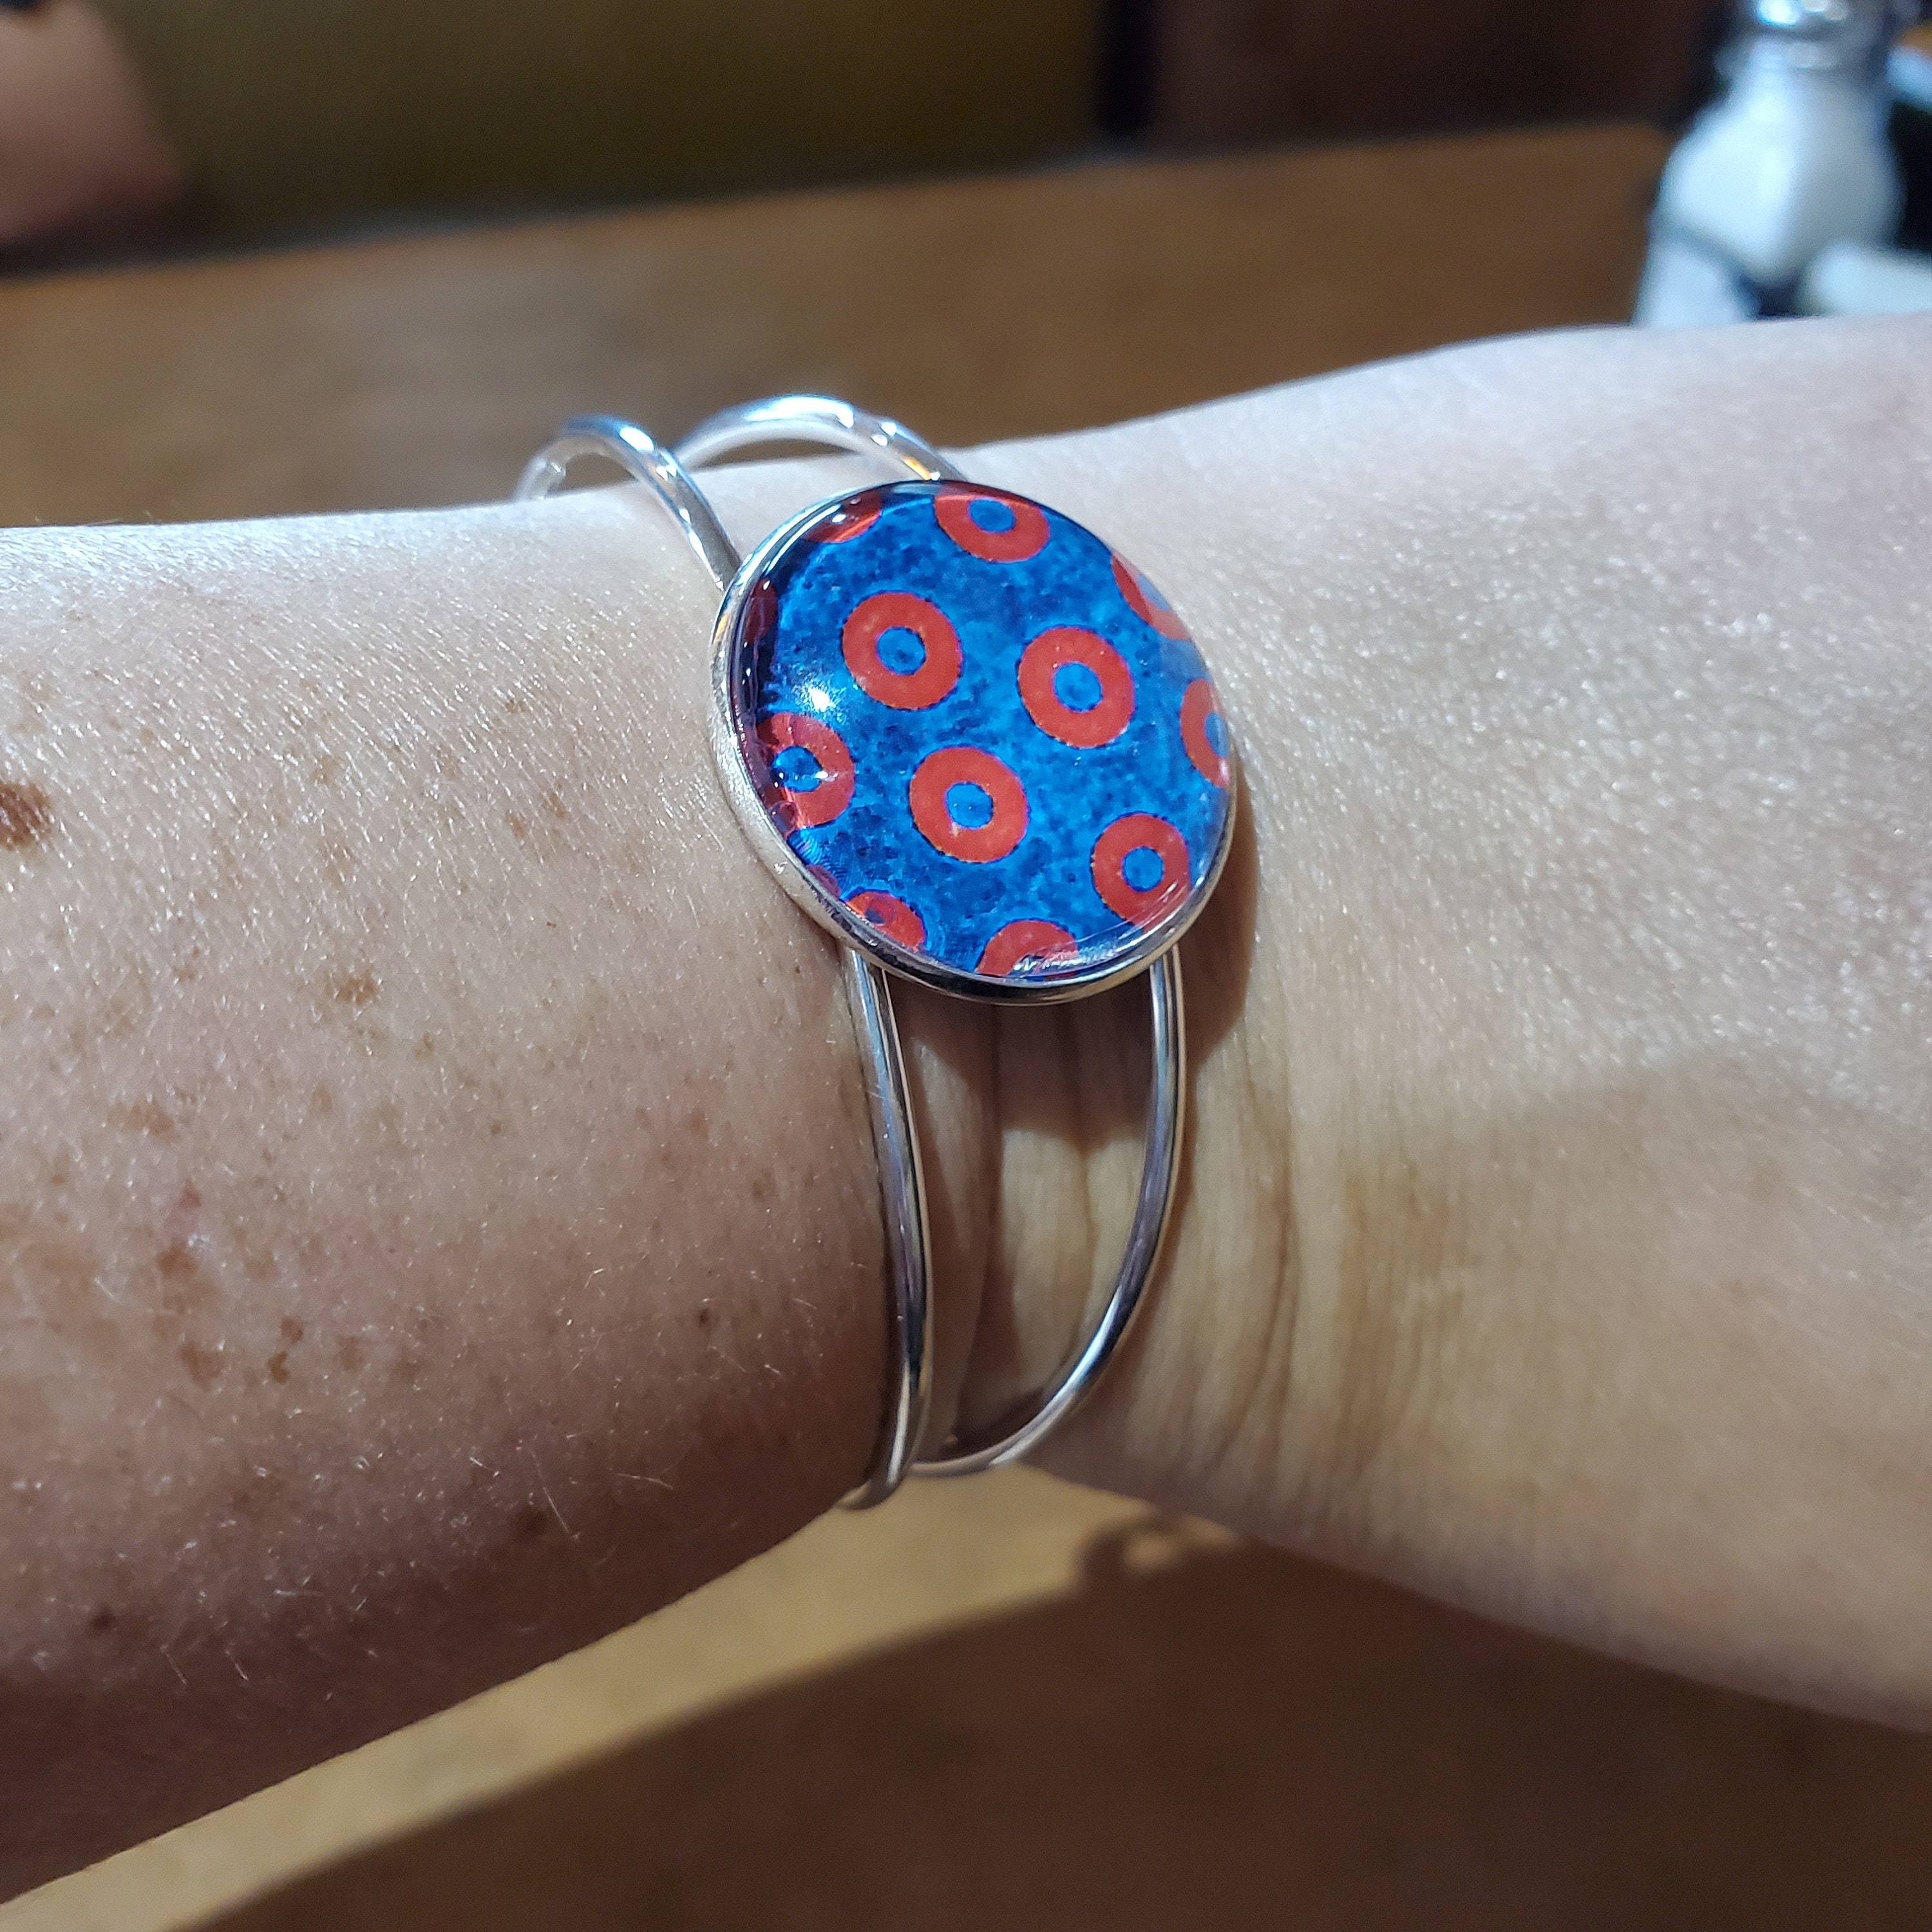 Randi M added a photo of their purchase